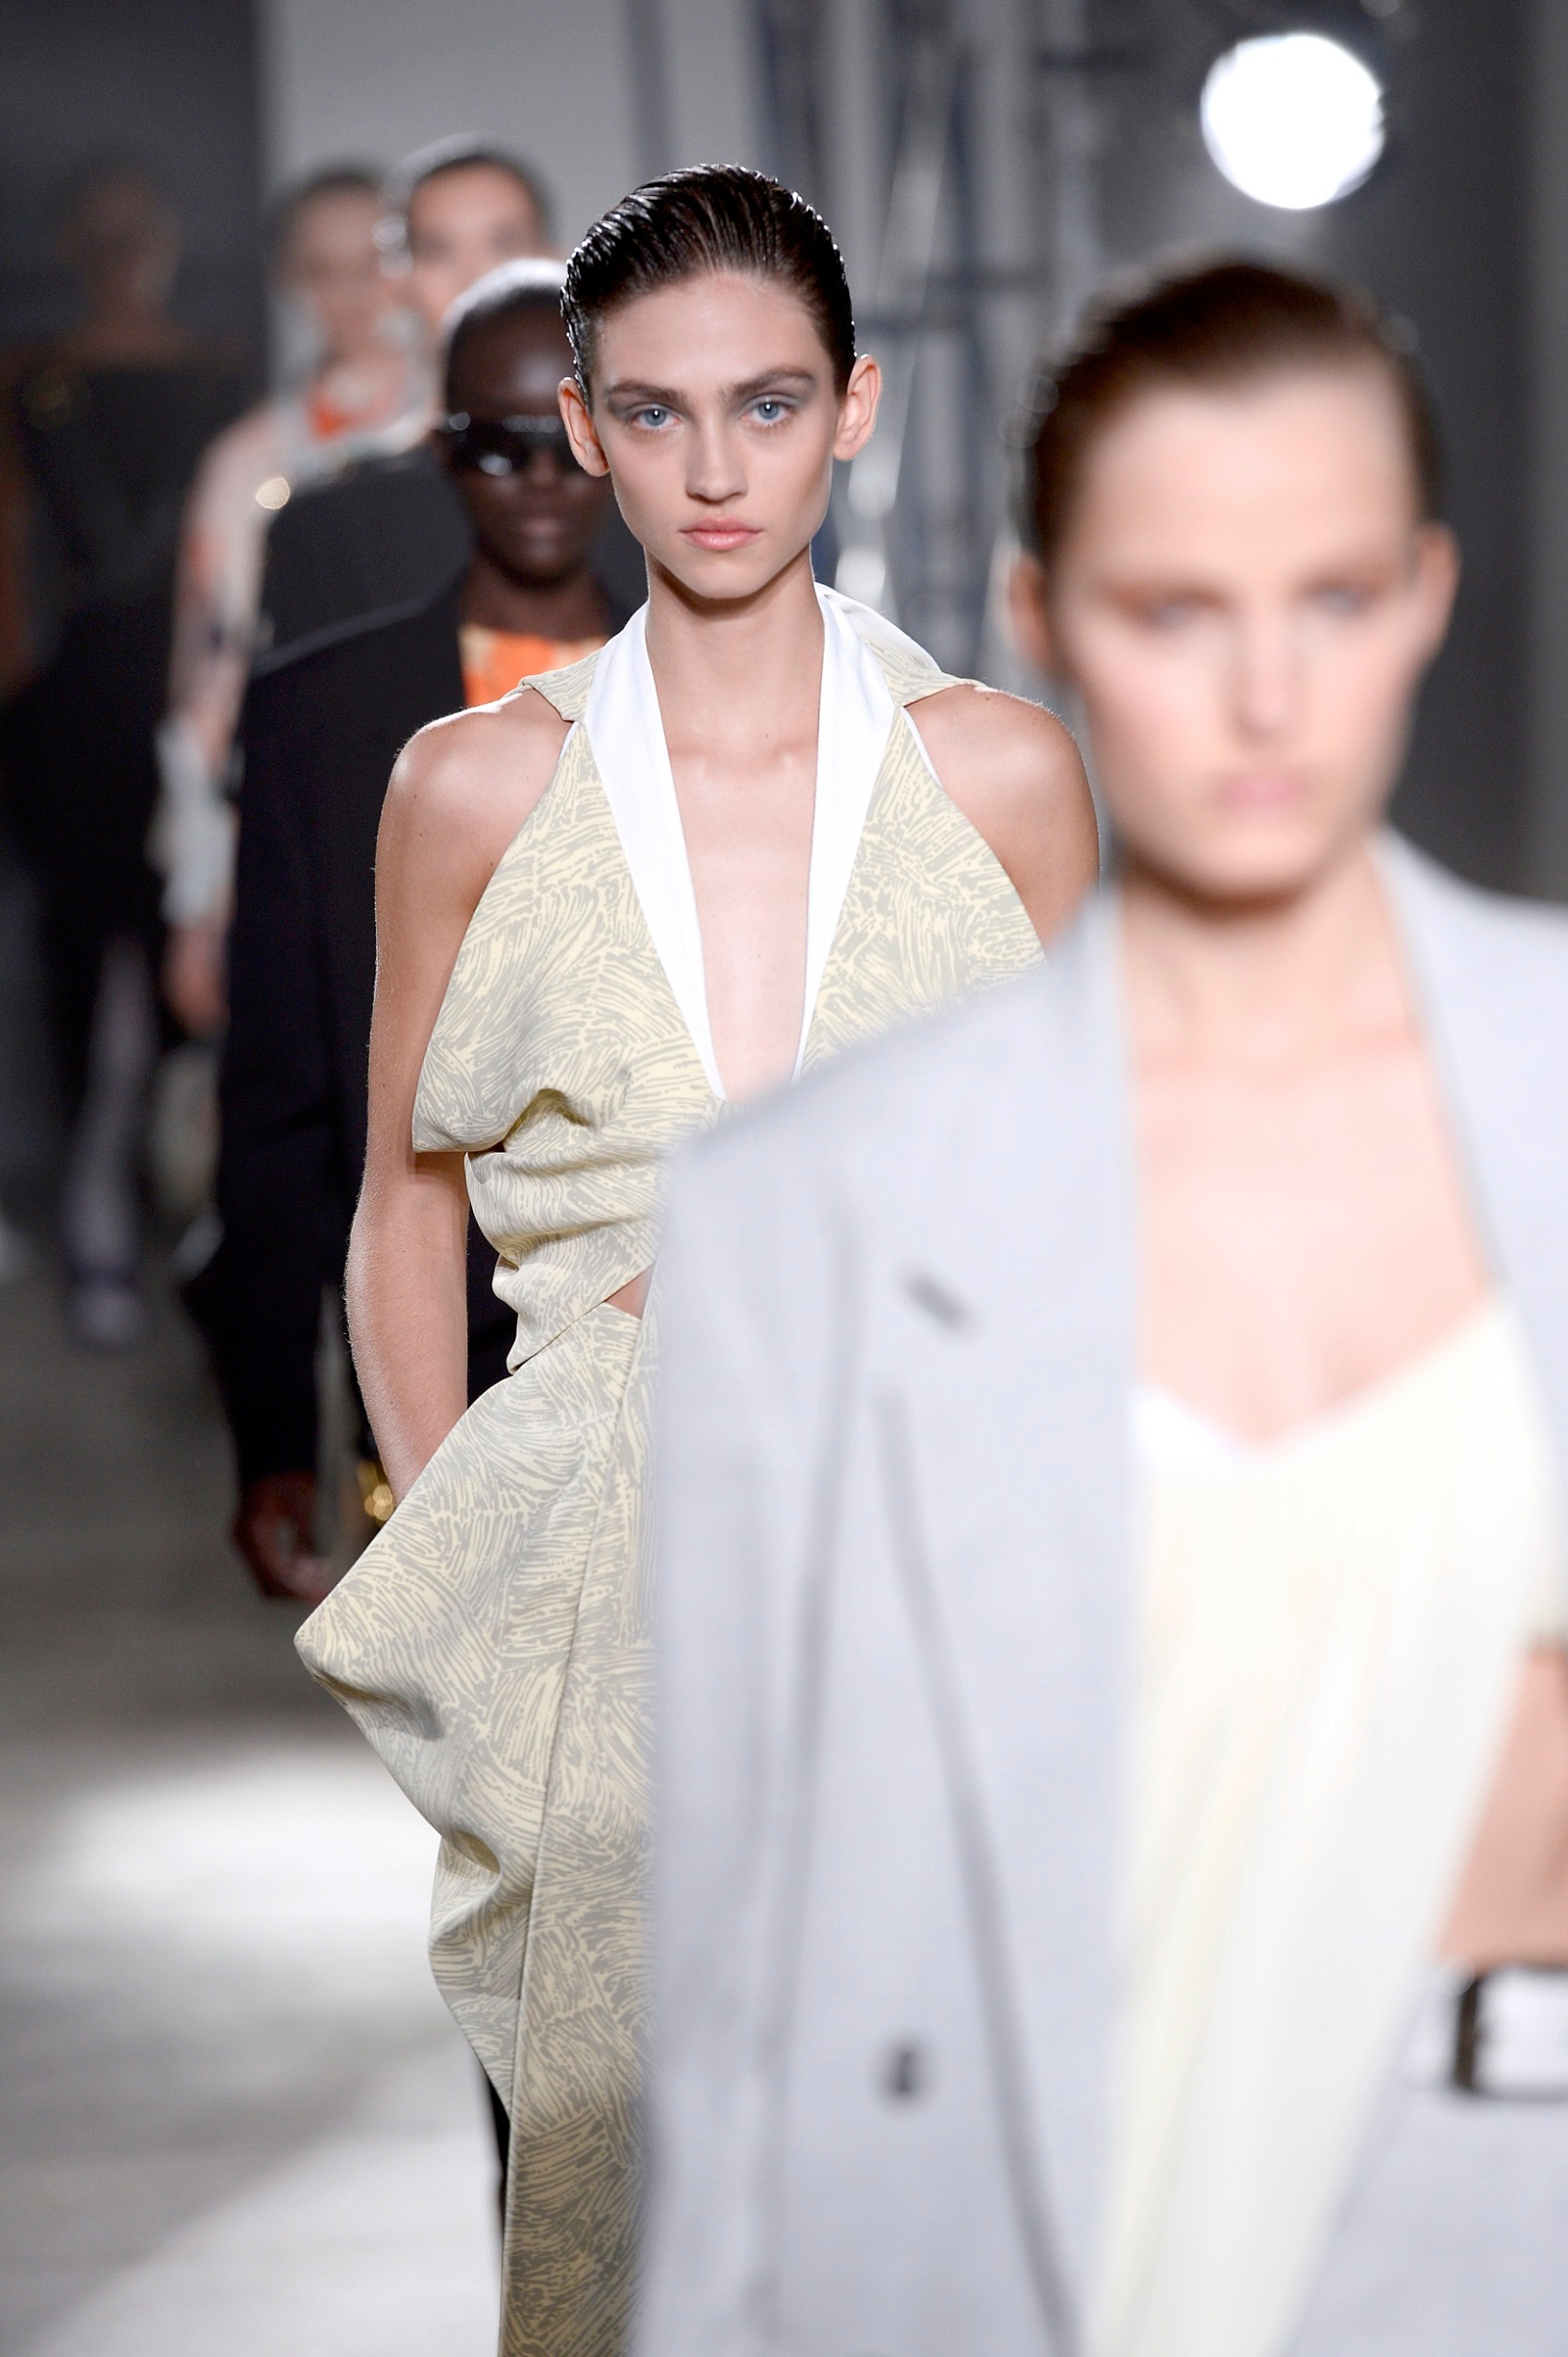 NEW YORK, NEW YORK - SEPTEMBER 10: Models walk the runway for Proenza Schouler during New York Fashion Week: The Shows on September 10, 2019 in New York City. (Photo by Fernanda Calfat/Getty Images for NYFW: The Shows)